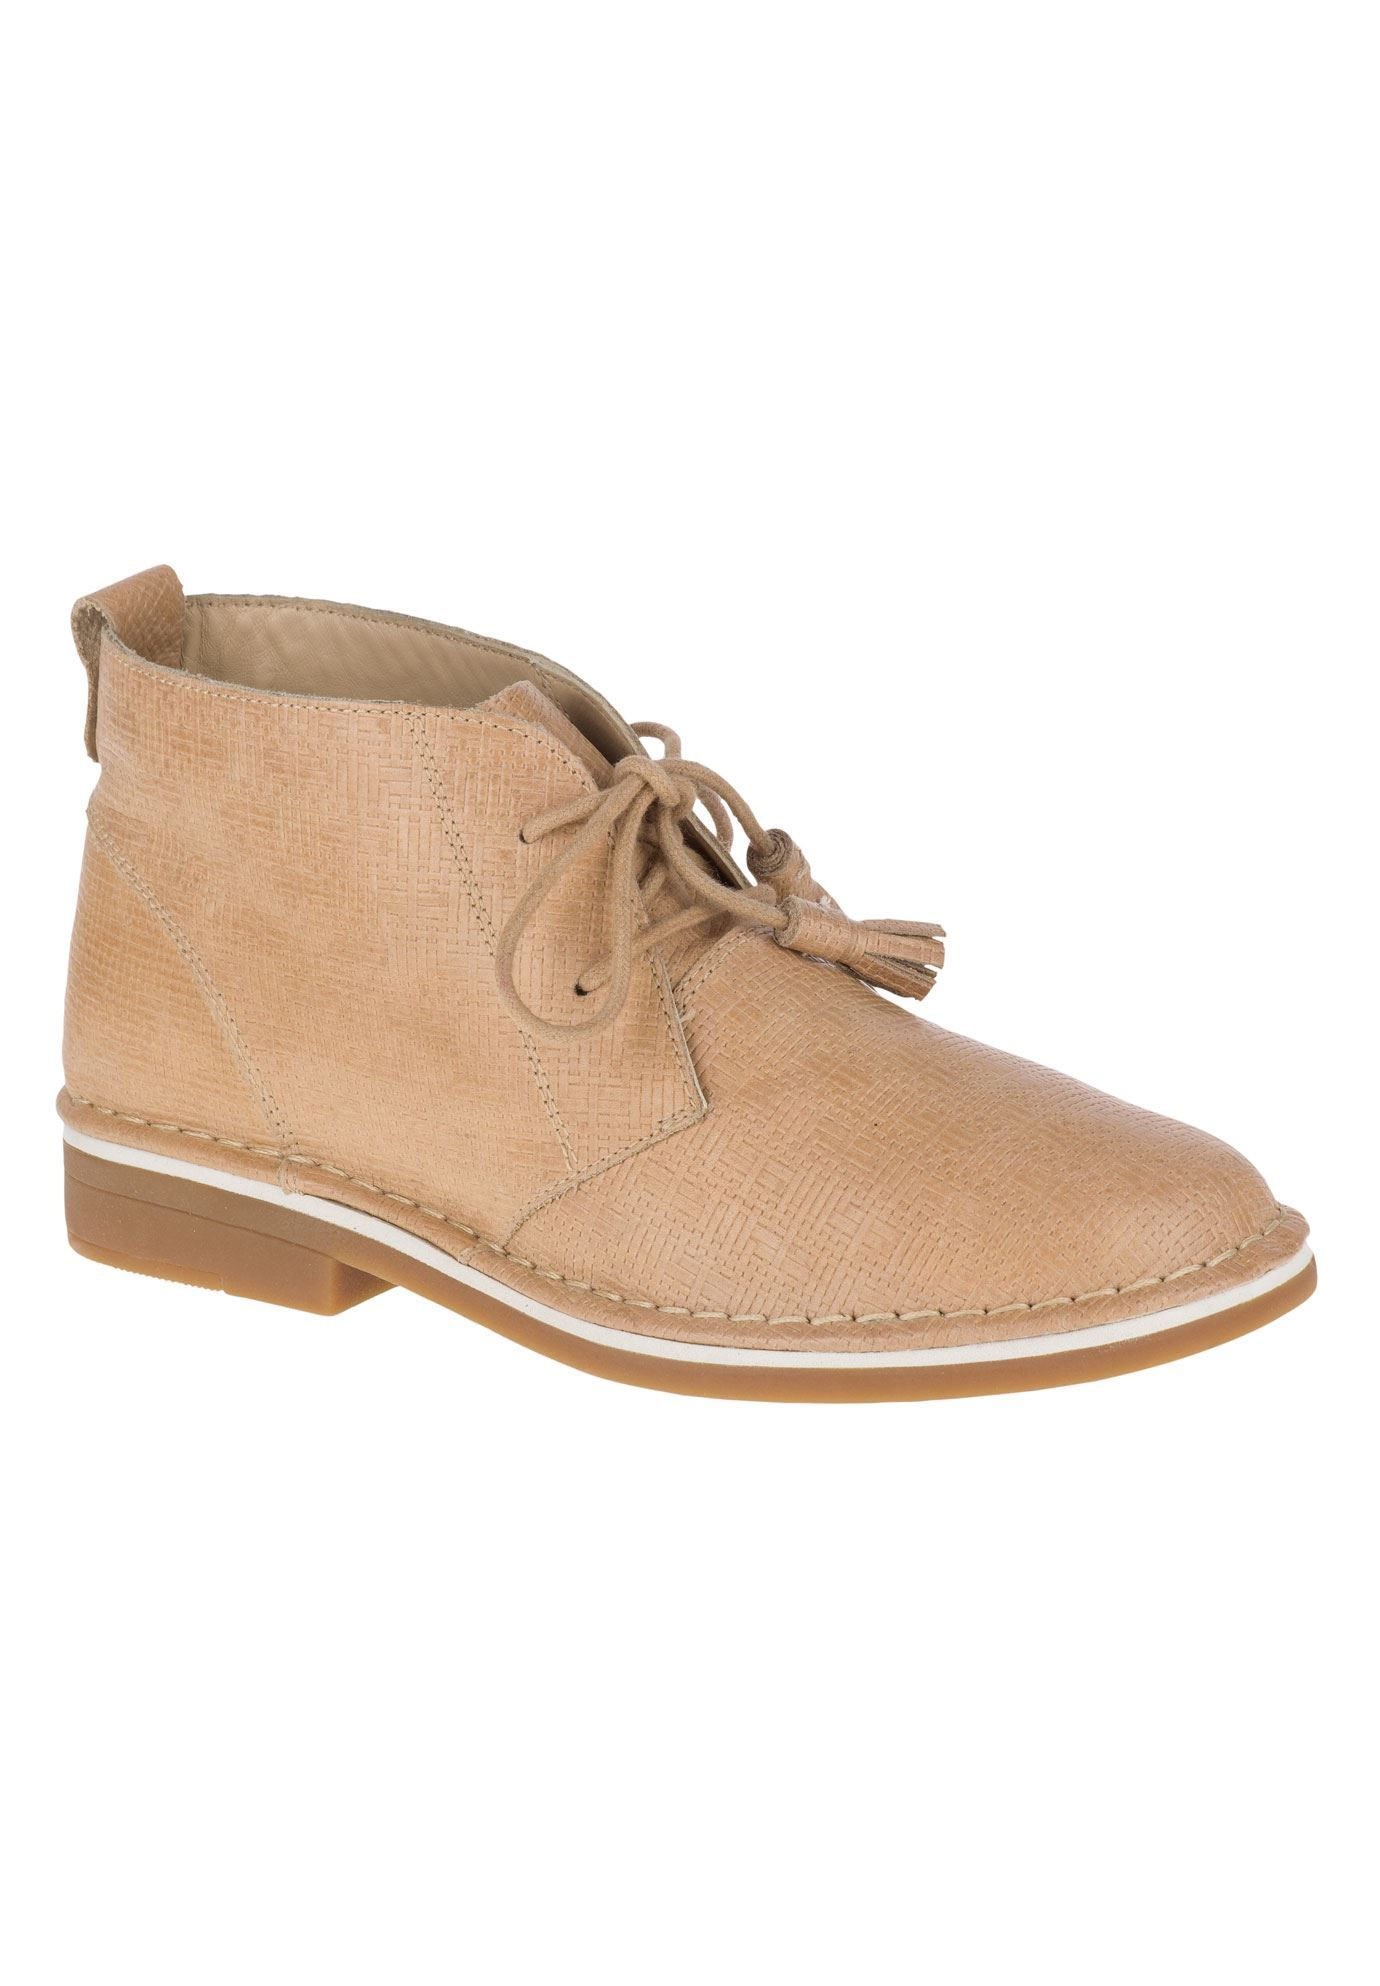 This Essential Boot In Worryfree Suede With A Shimmering Finish Is A True Wardrobe Staple Easy In 2020 Hush Puppies Shoes Women Hush Puppies Shoes Hush Puppies Women